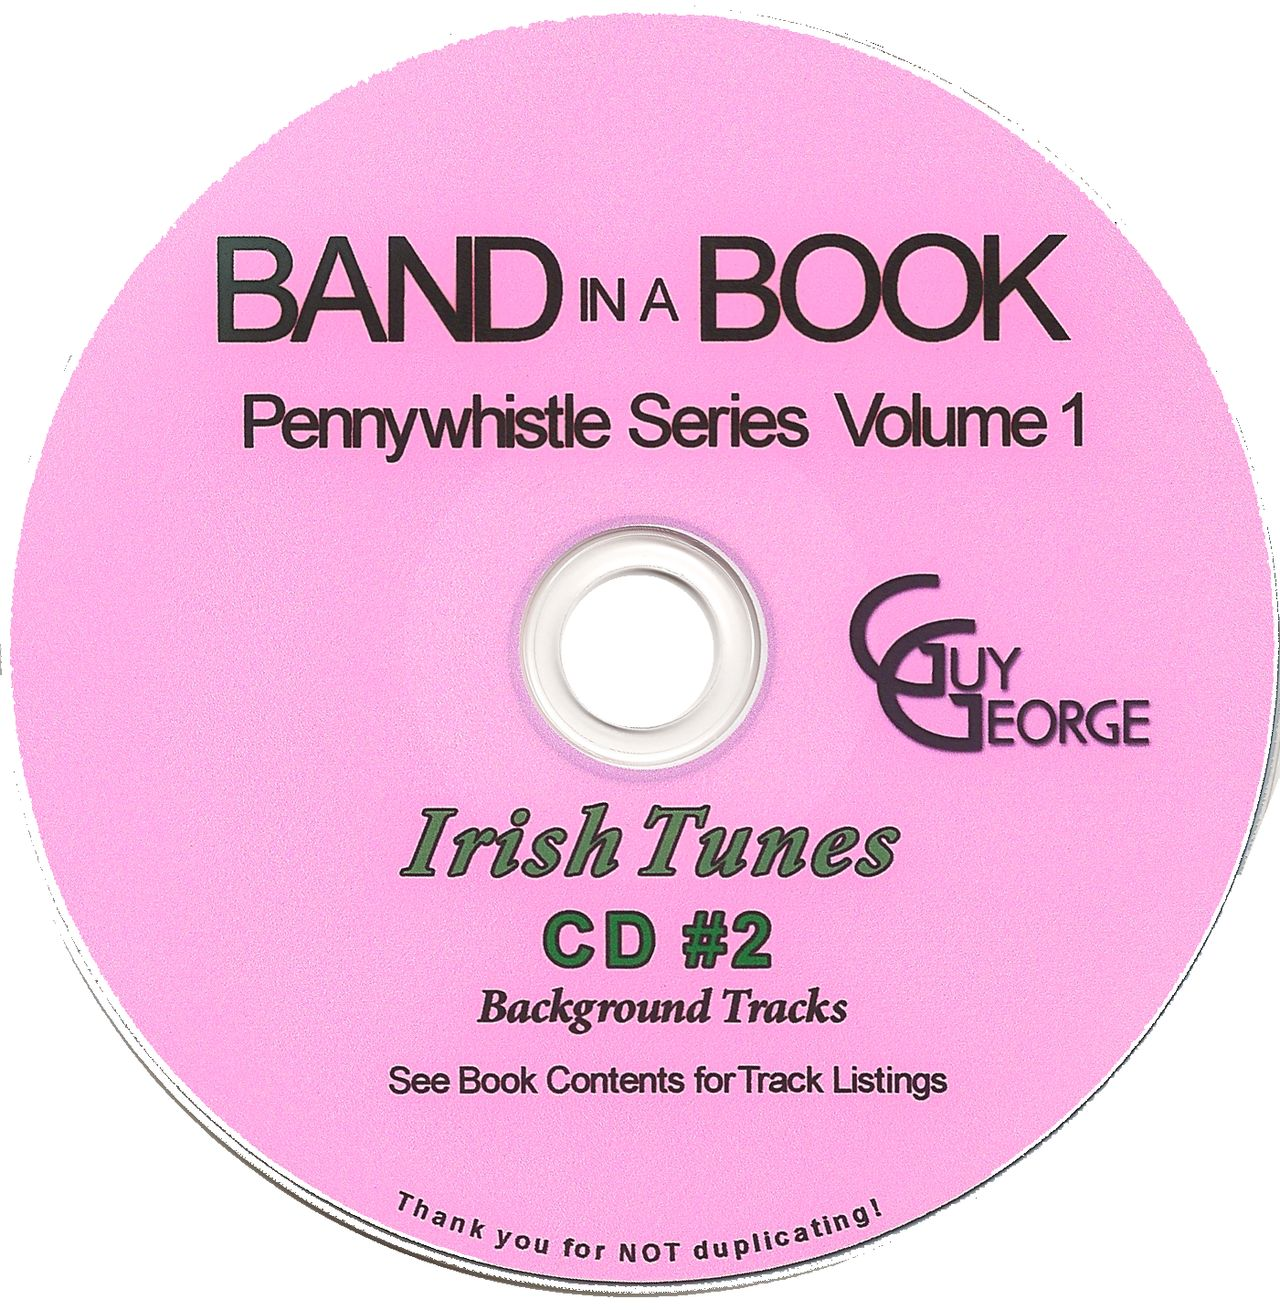 Band In A Book Pennywhistle Series Vol1 - Irish Tunes CD2